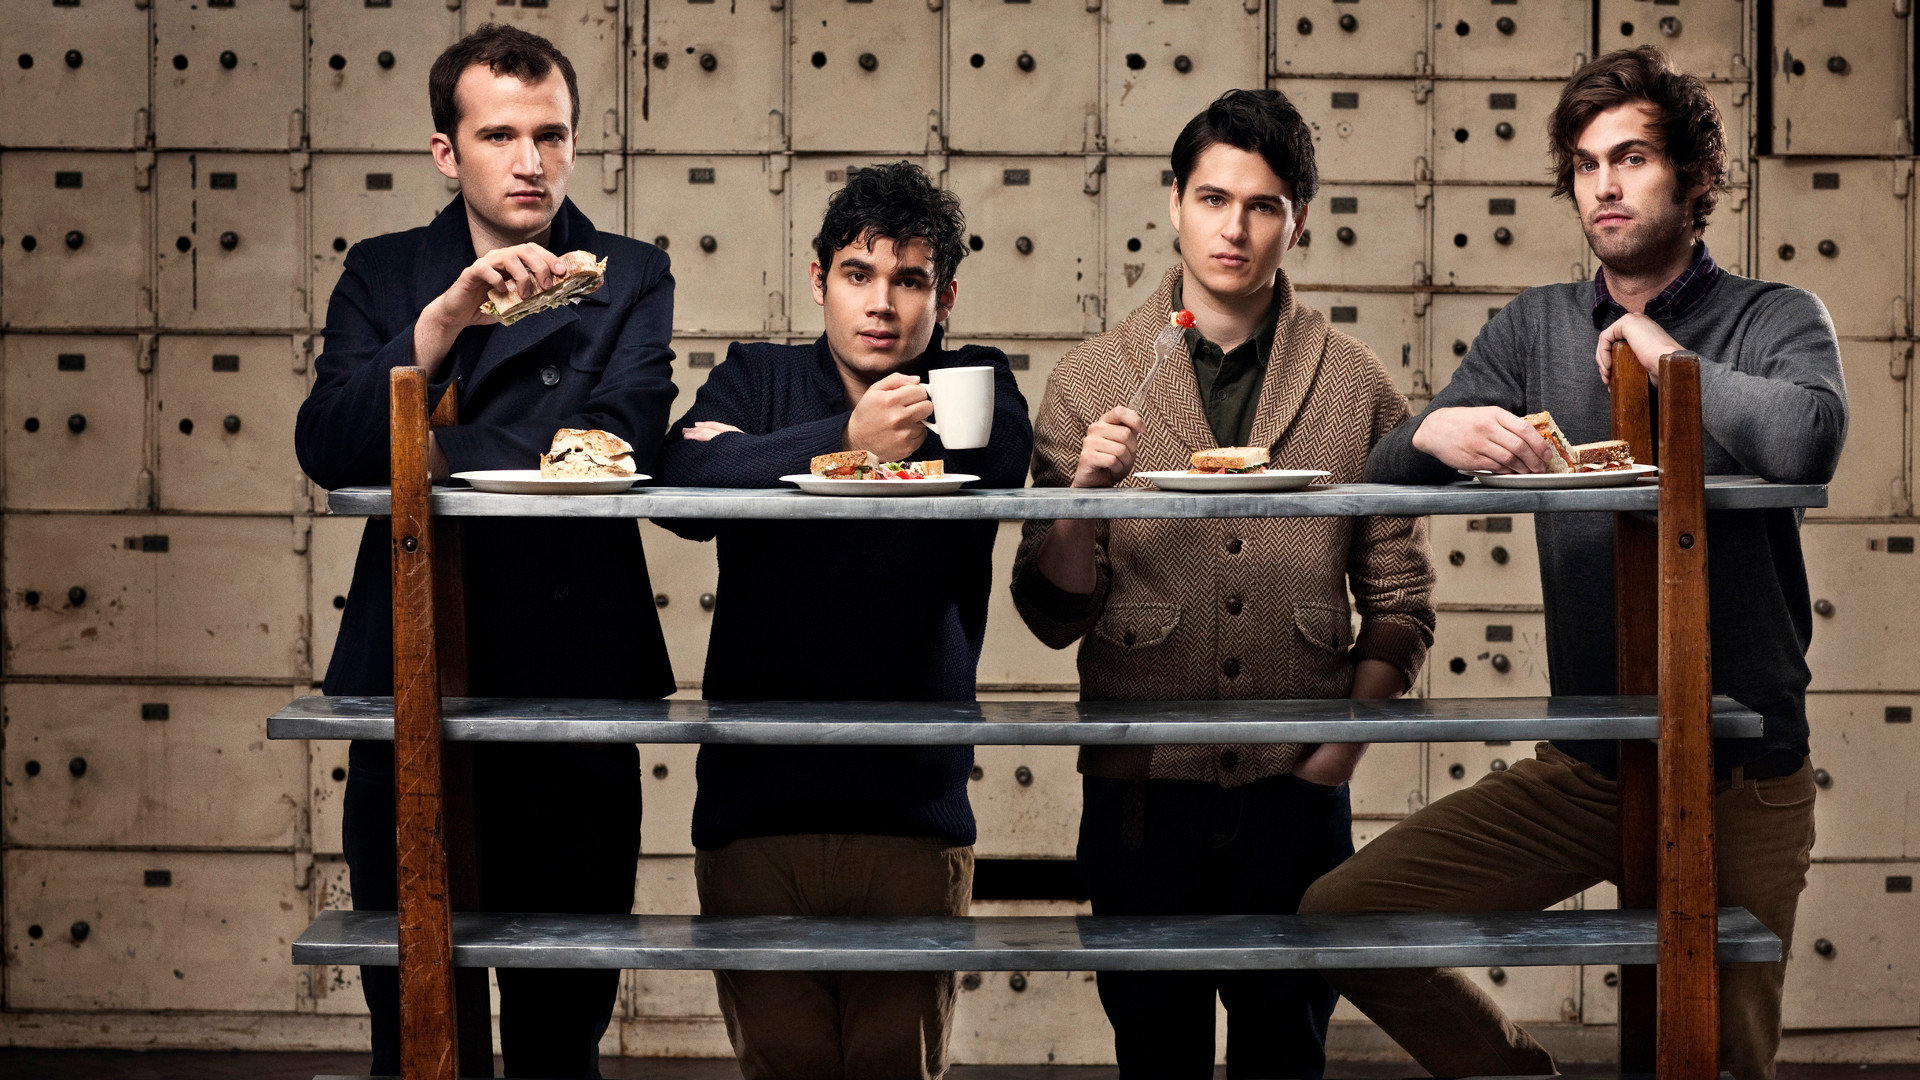 Download full hd 1920x1080 Vampire Weekend computer background ID:473430 for free